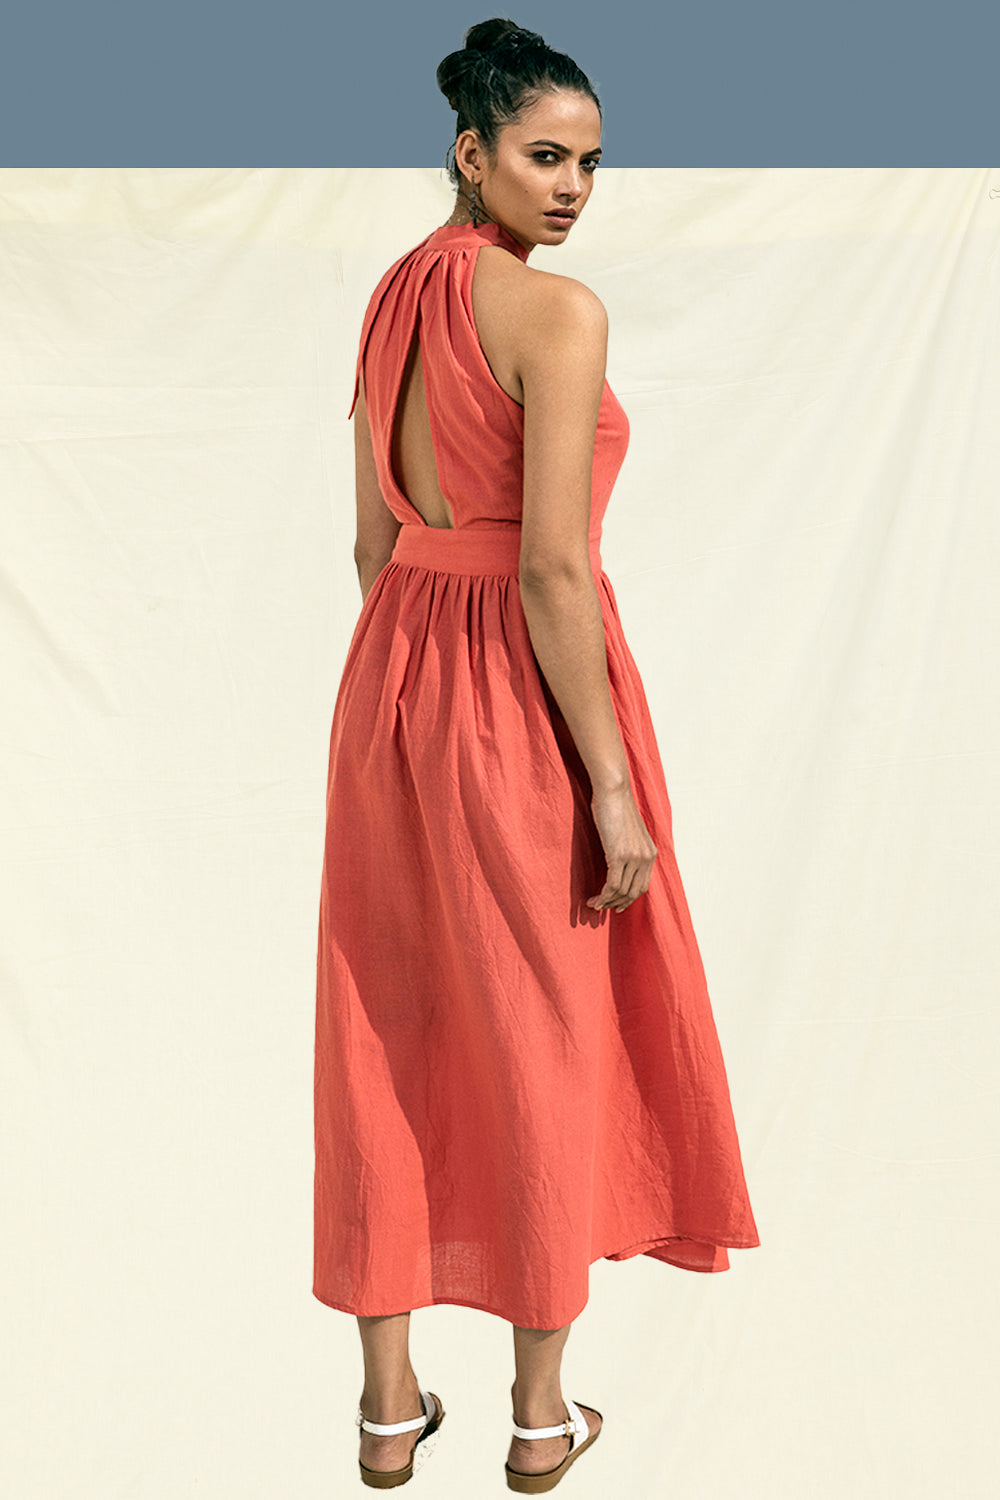 Organic Cotton Ankle Length Maxi Dress in Coral